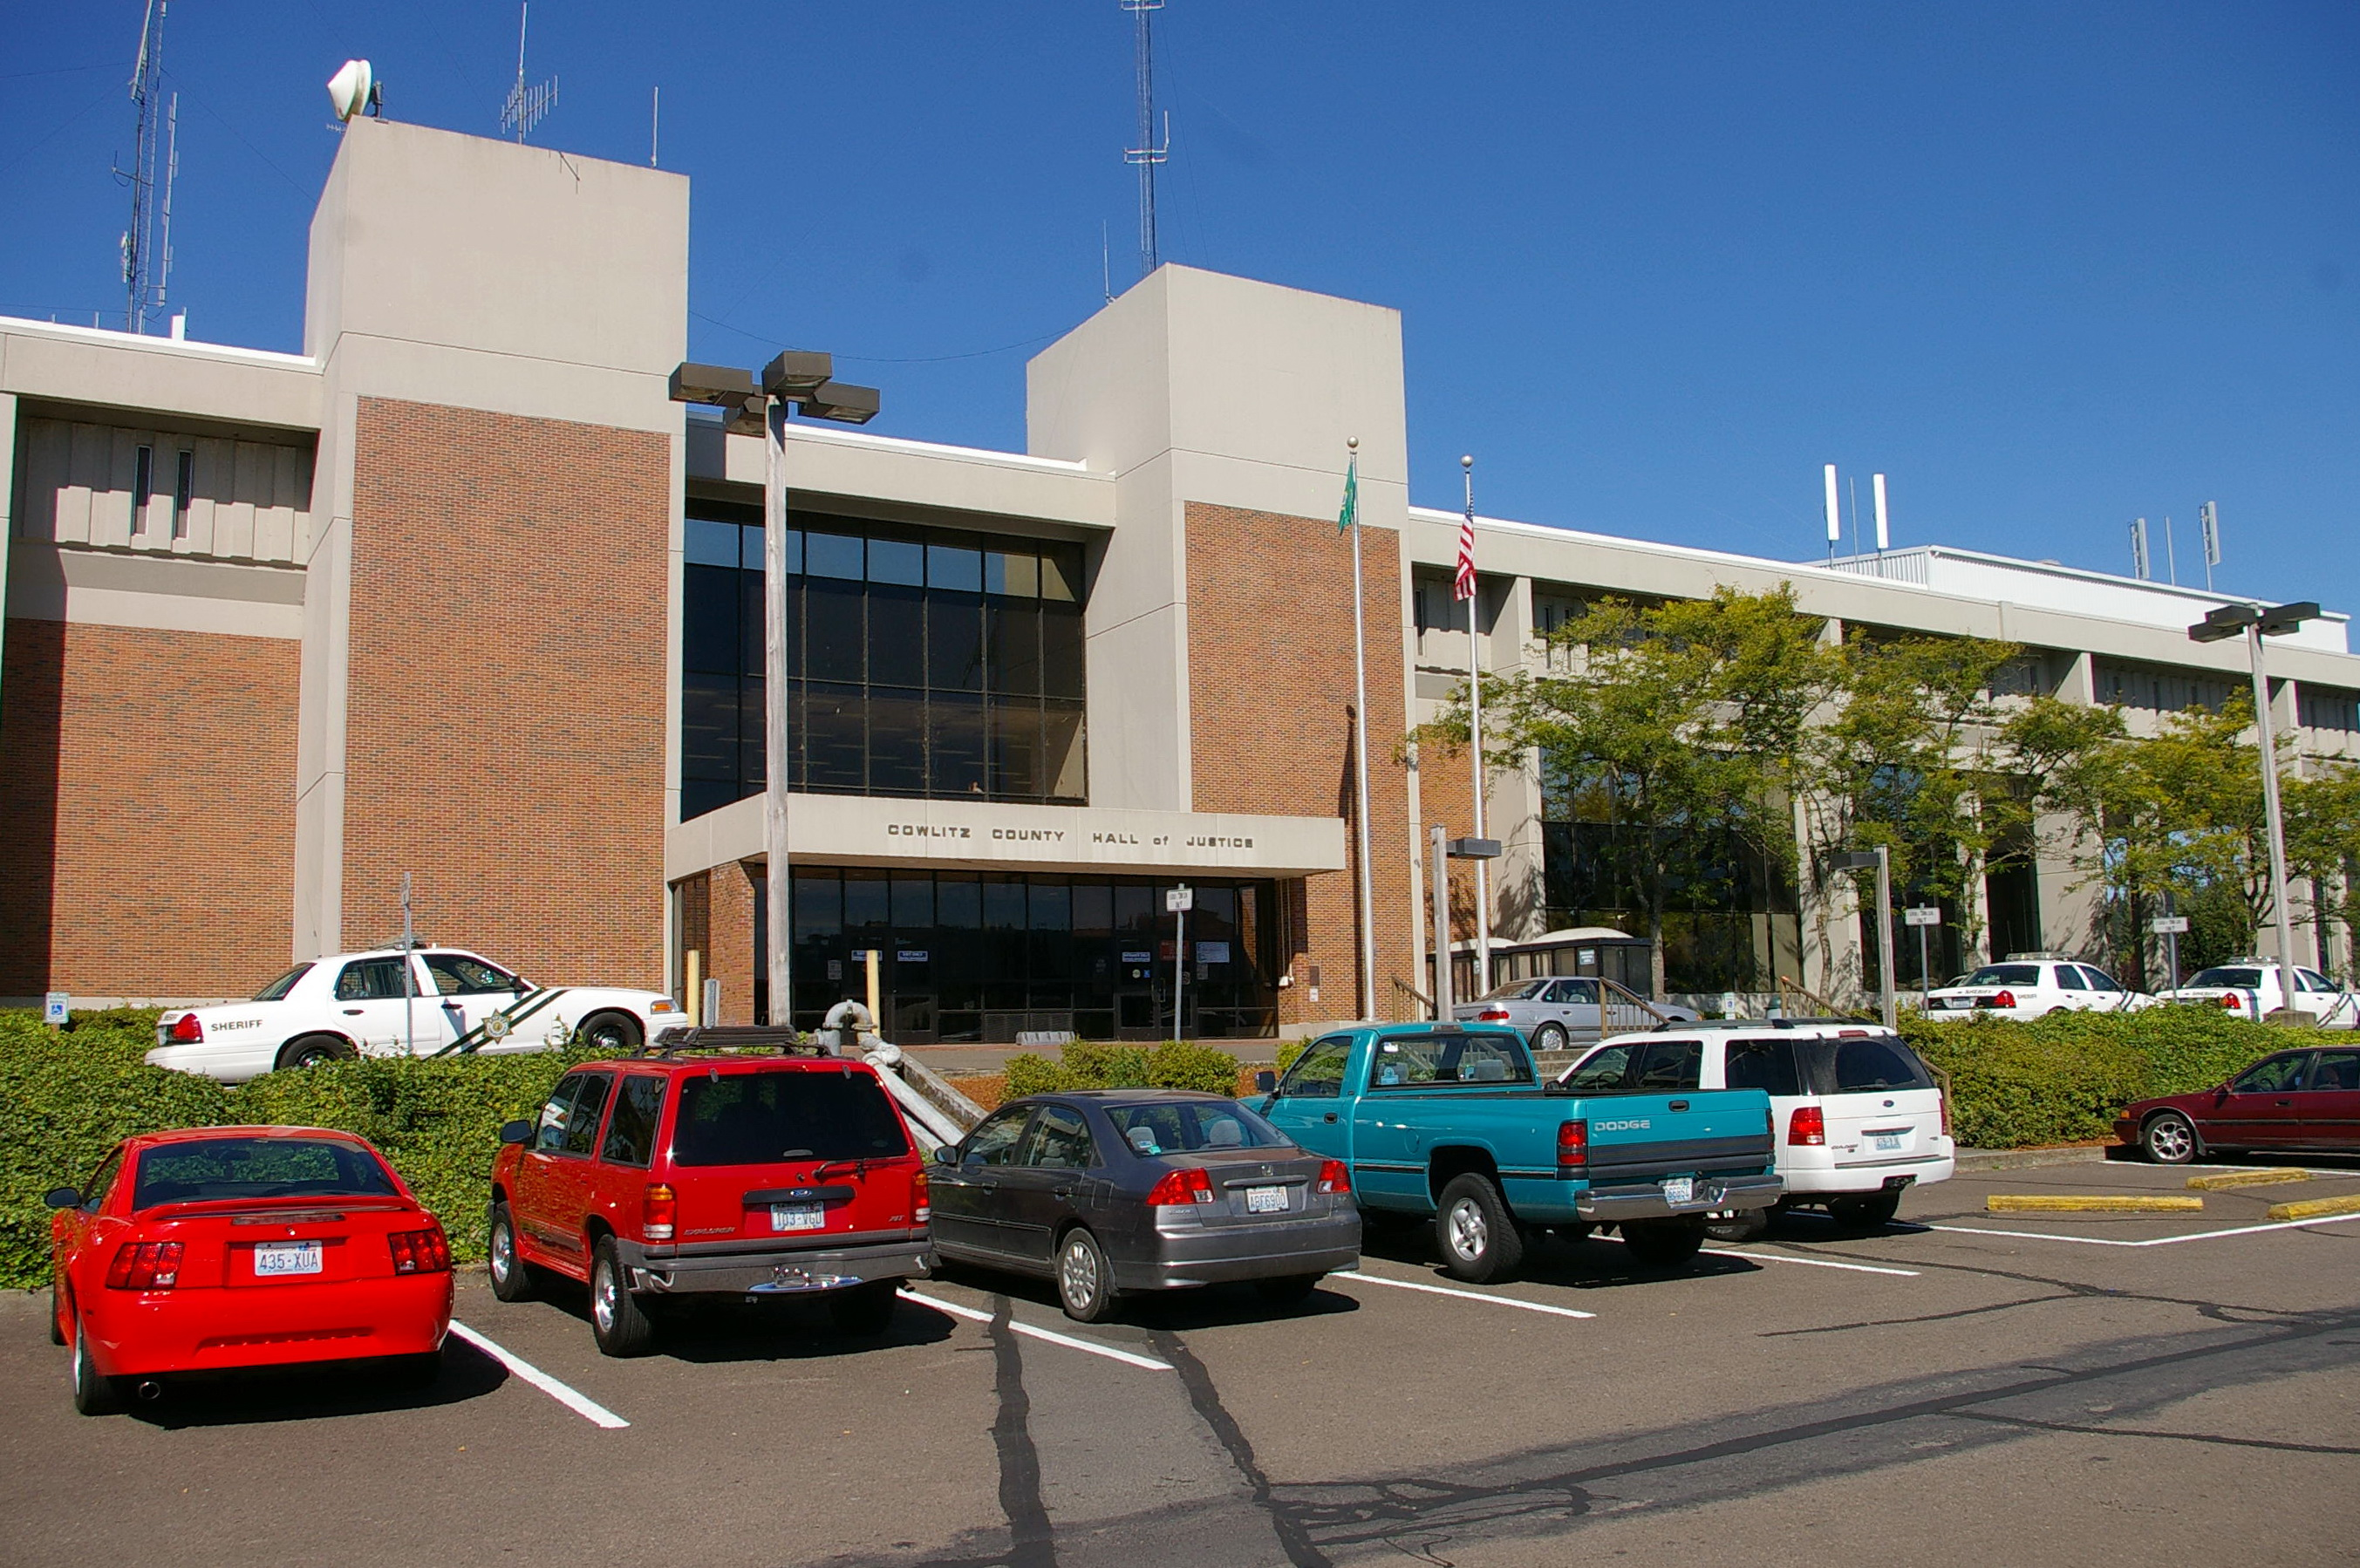 cowlitz county The superior court for cowlitz county, washington is a state trial court of general jurisdiction we are located in kelso, cowlitz county, washington state this court has state-wide jurisdiction and hears:.